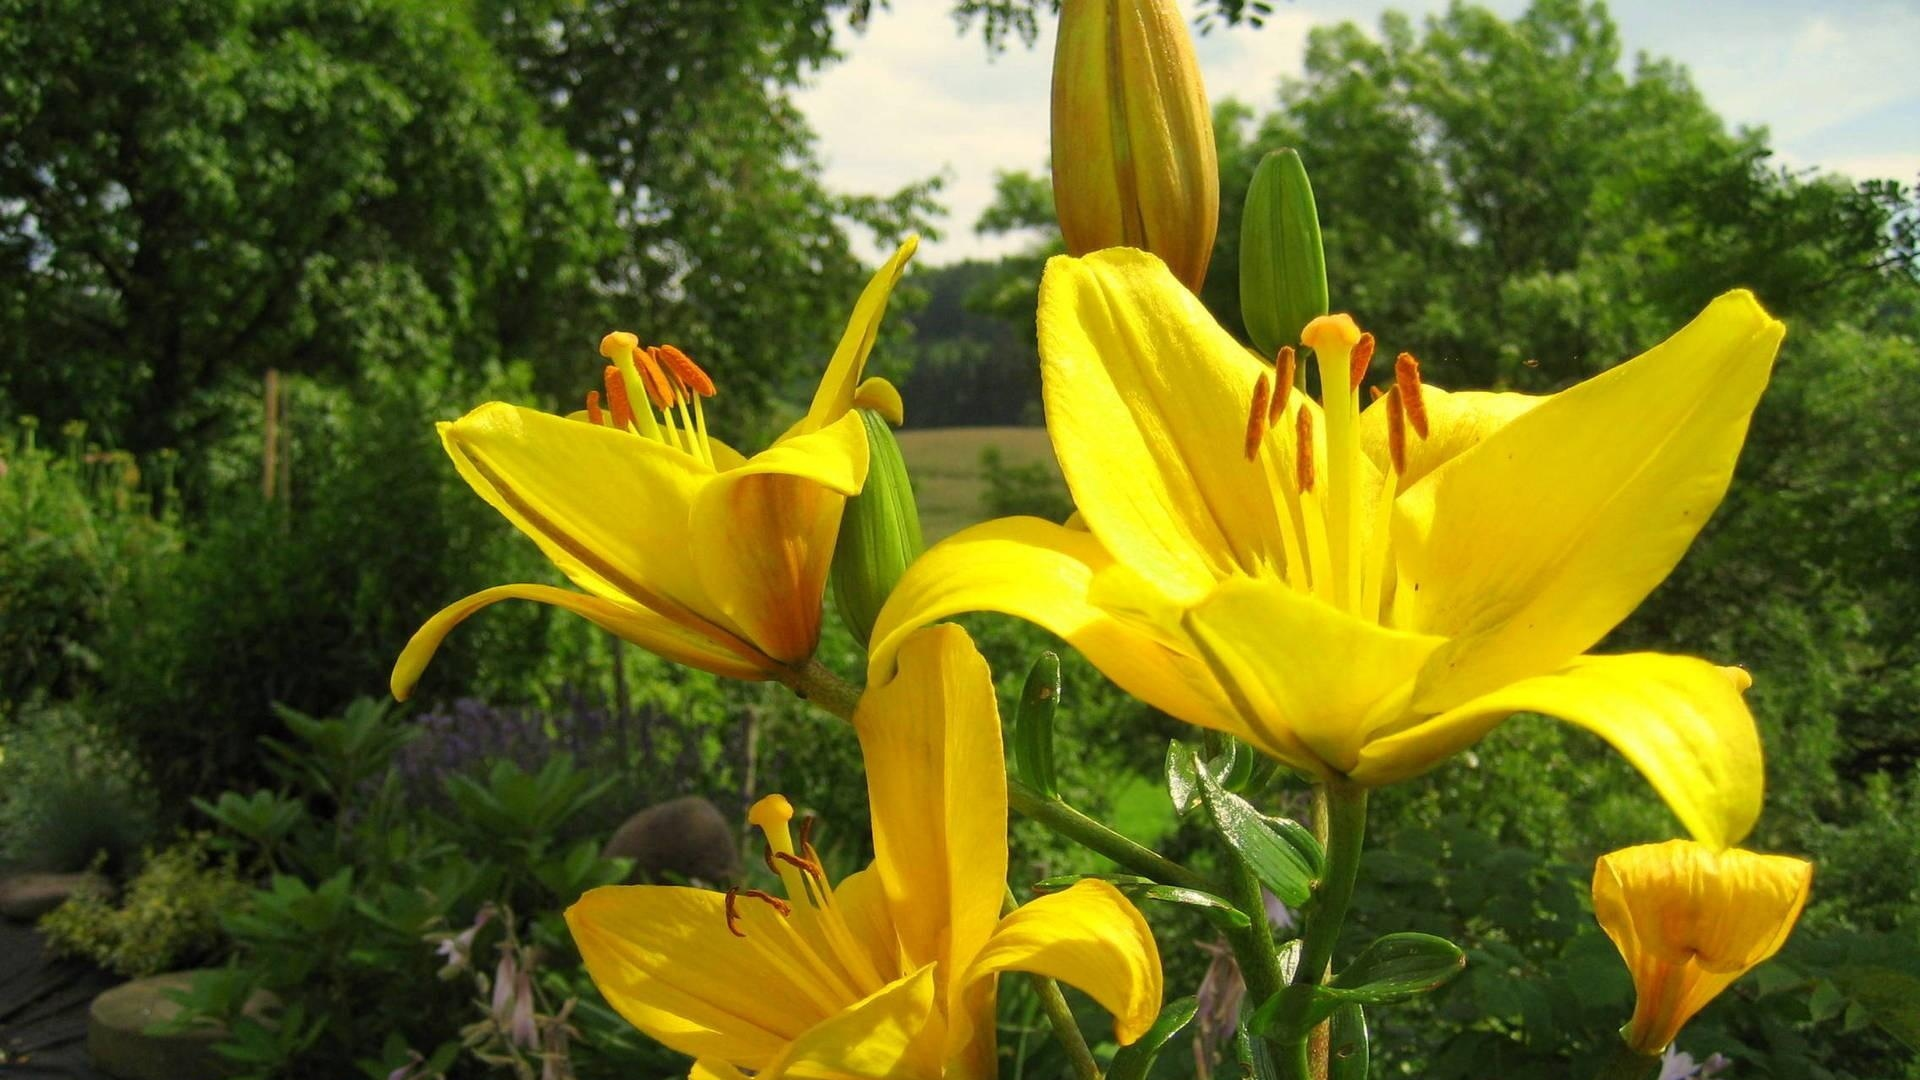 Download wallpaper 1920x1080 lily flower yellow bud water get the latest lily flower yellow news pictures and videos and learn all about lily flower yellow from wallpapers4u your wallpaper news source izmirmasajfo